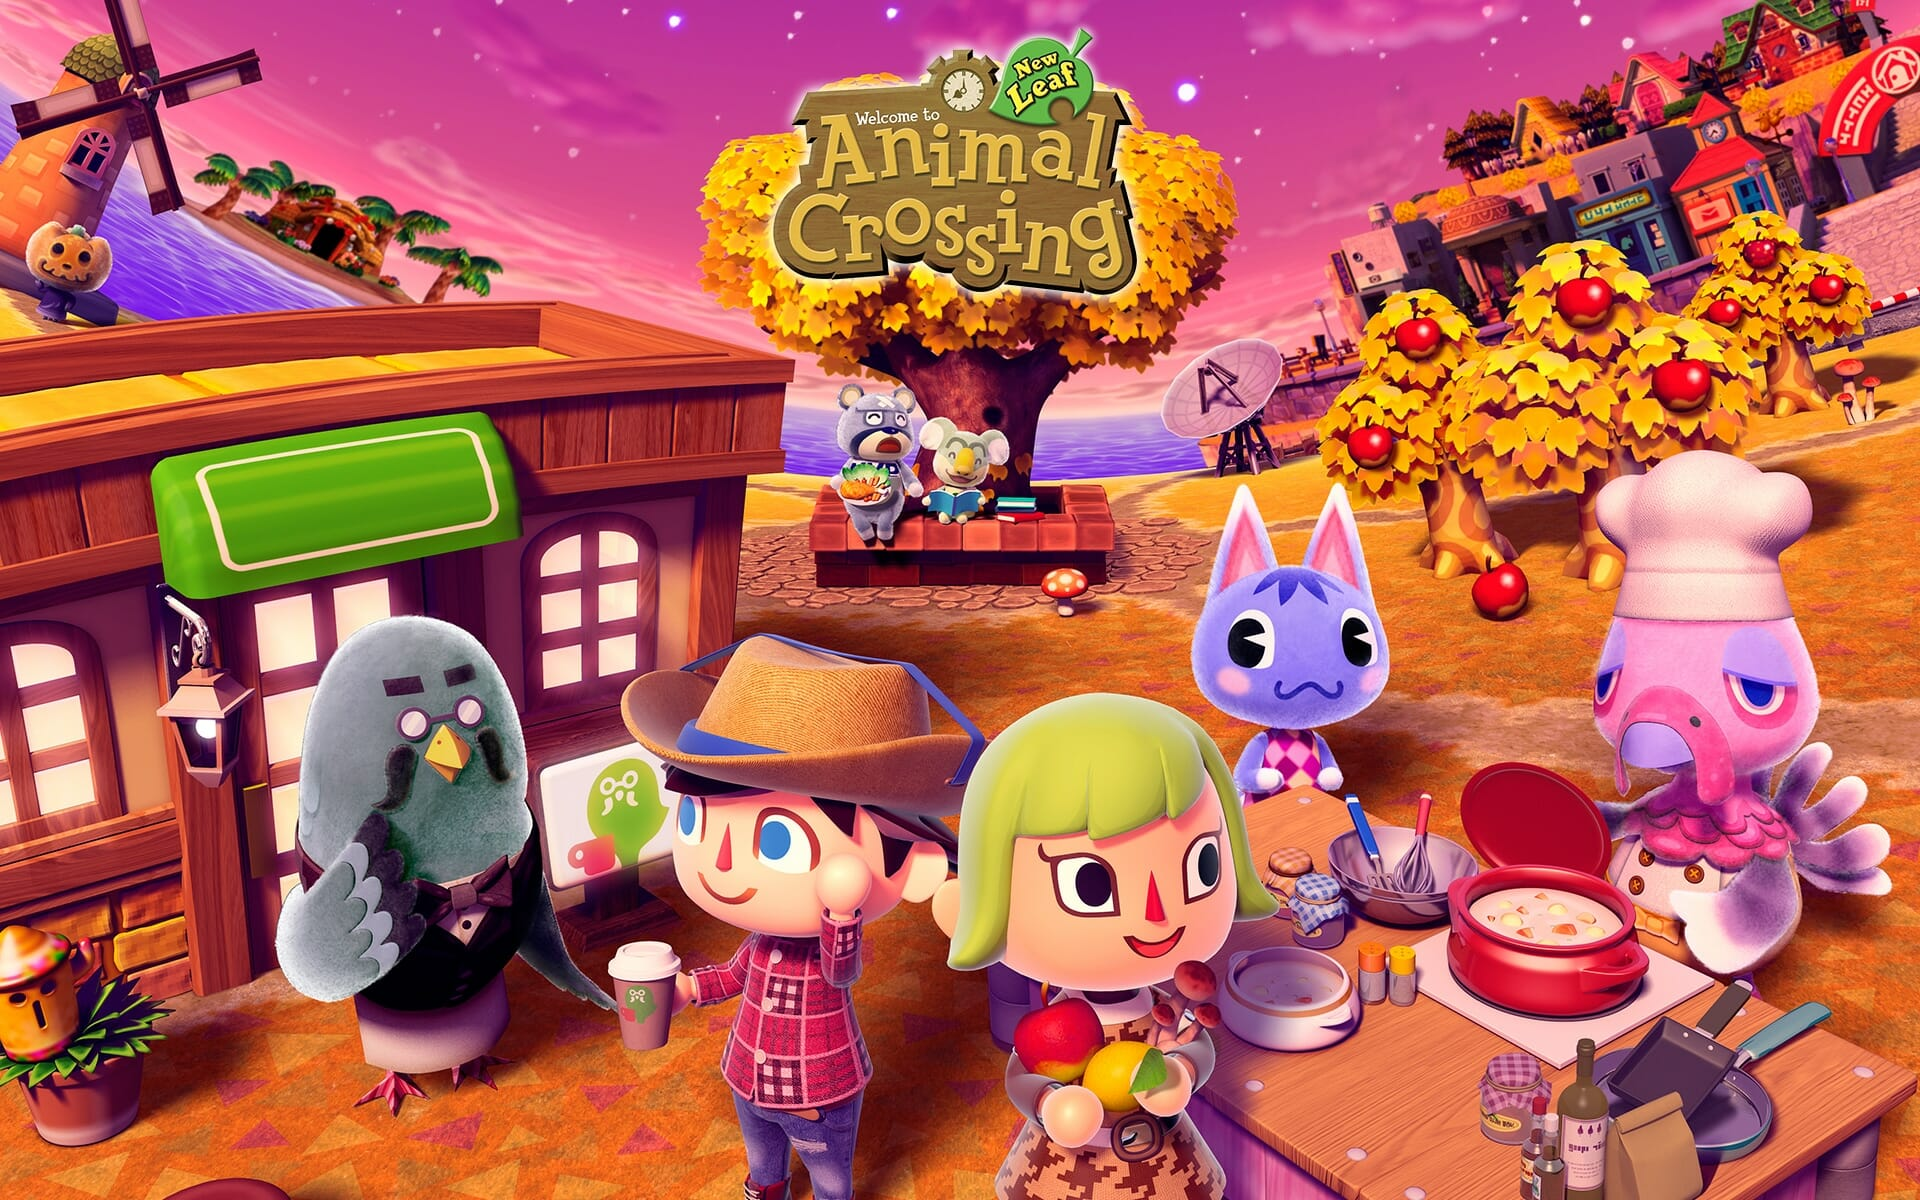 Animal Crossing characters and logo